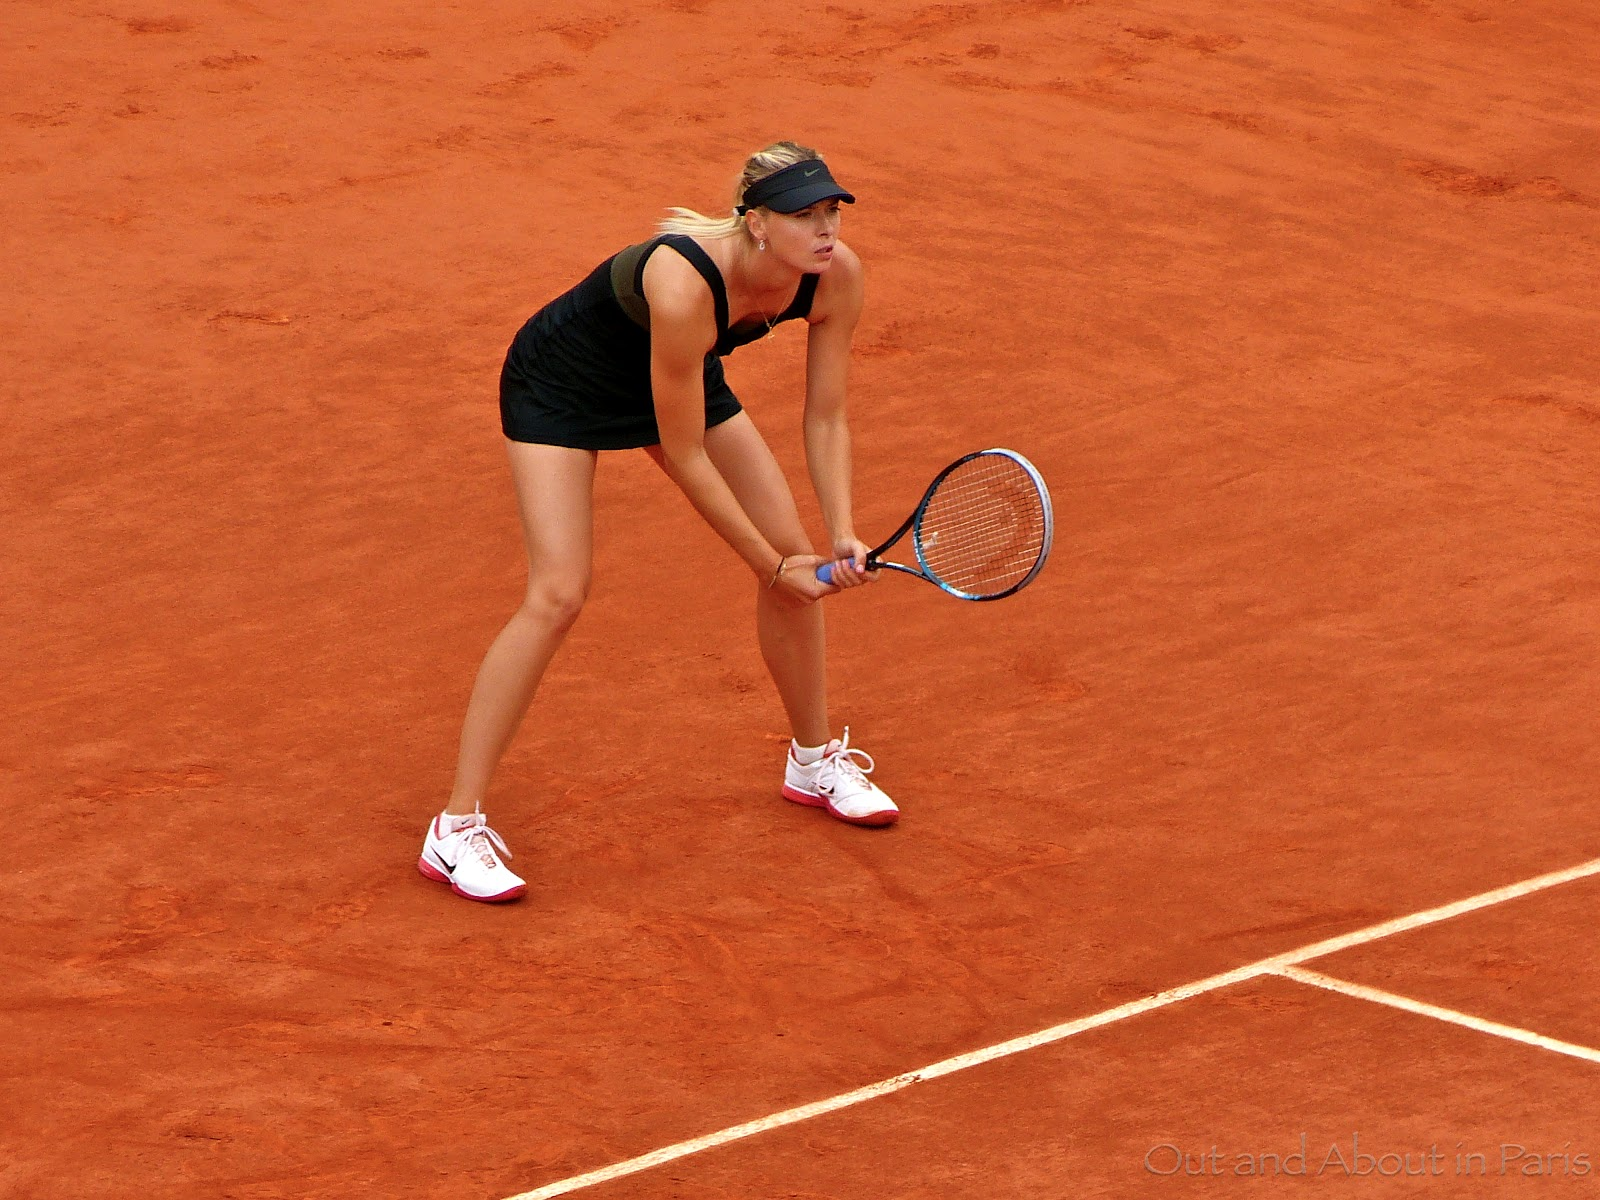 Sunday S Picture And A Song Sharapova And Djokovic At The French Open Women S Final